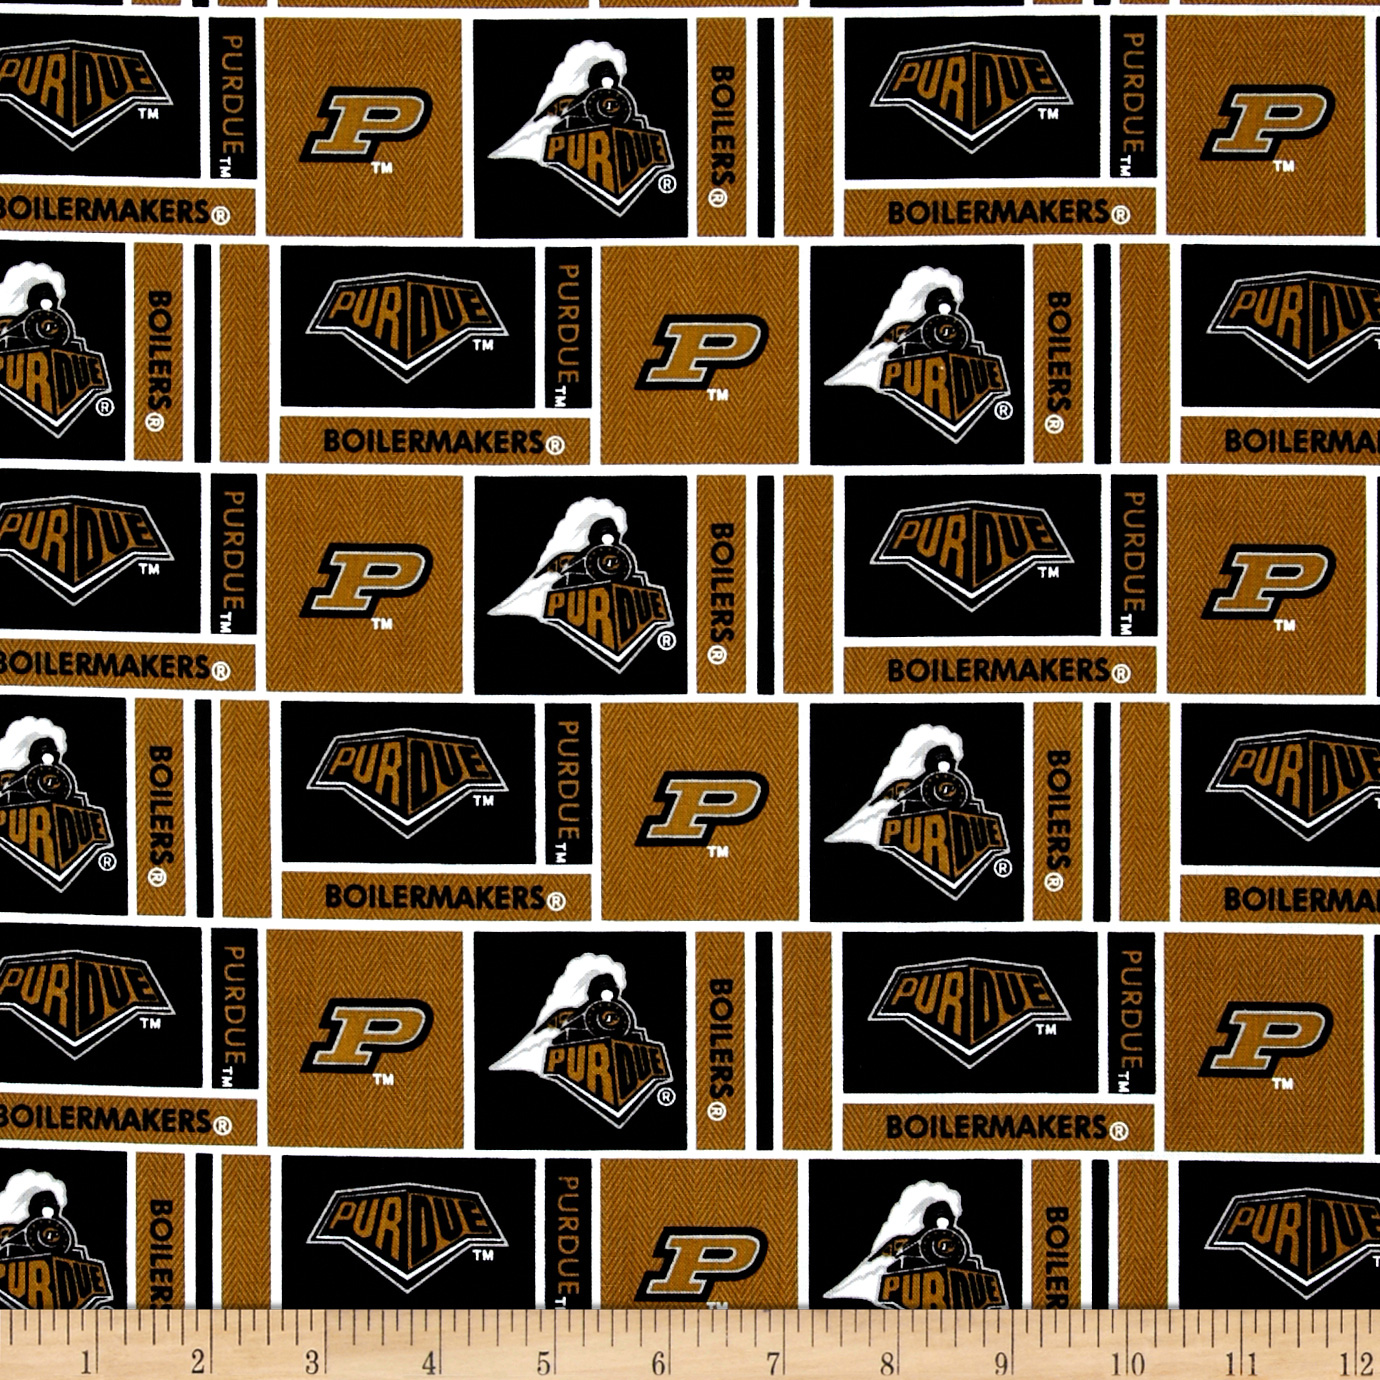 Collegiate Cotton Broadcloth Purdue University Fabric